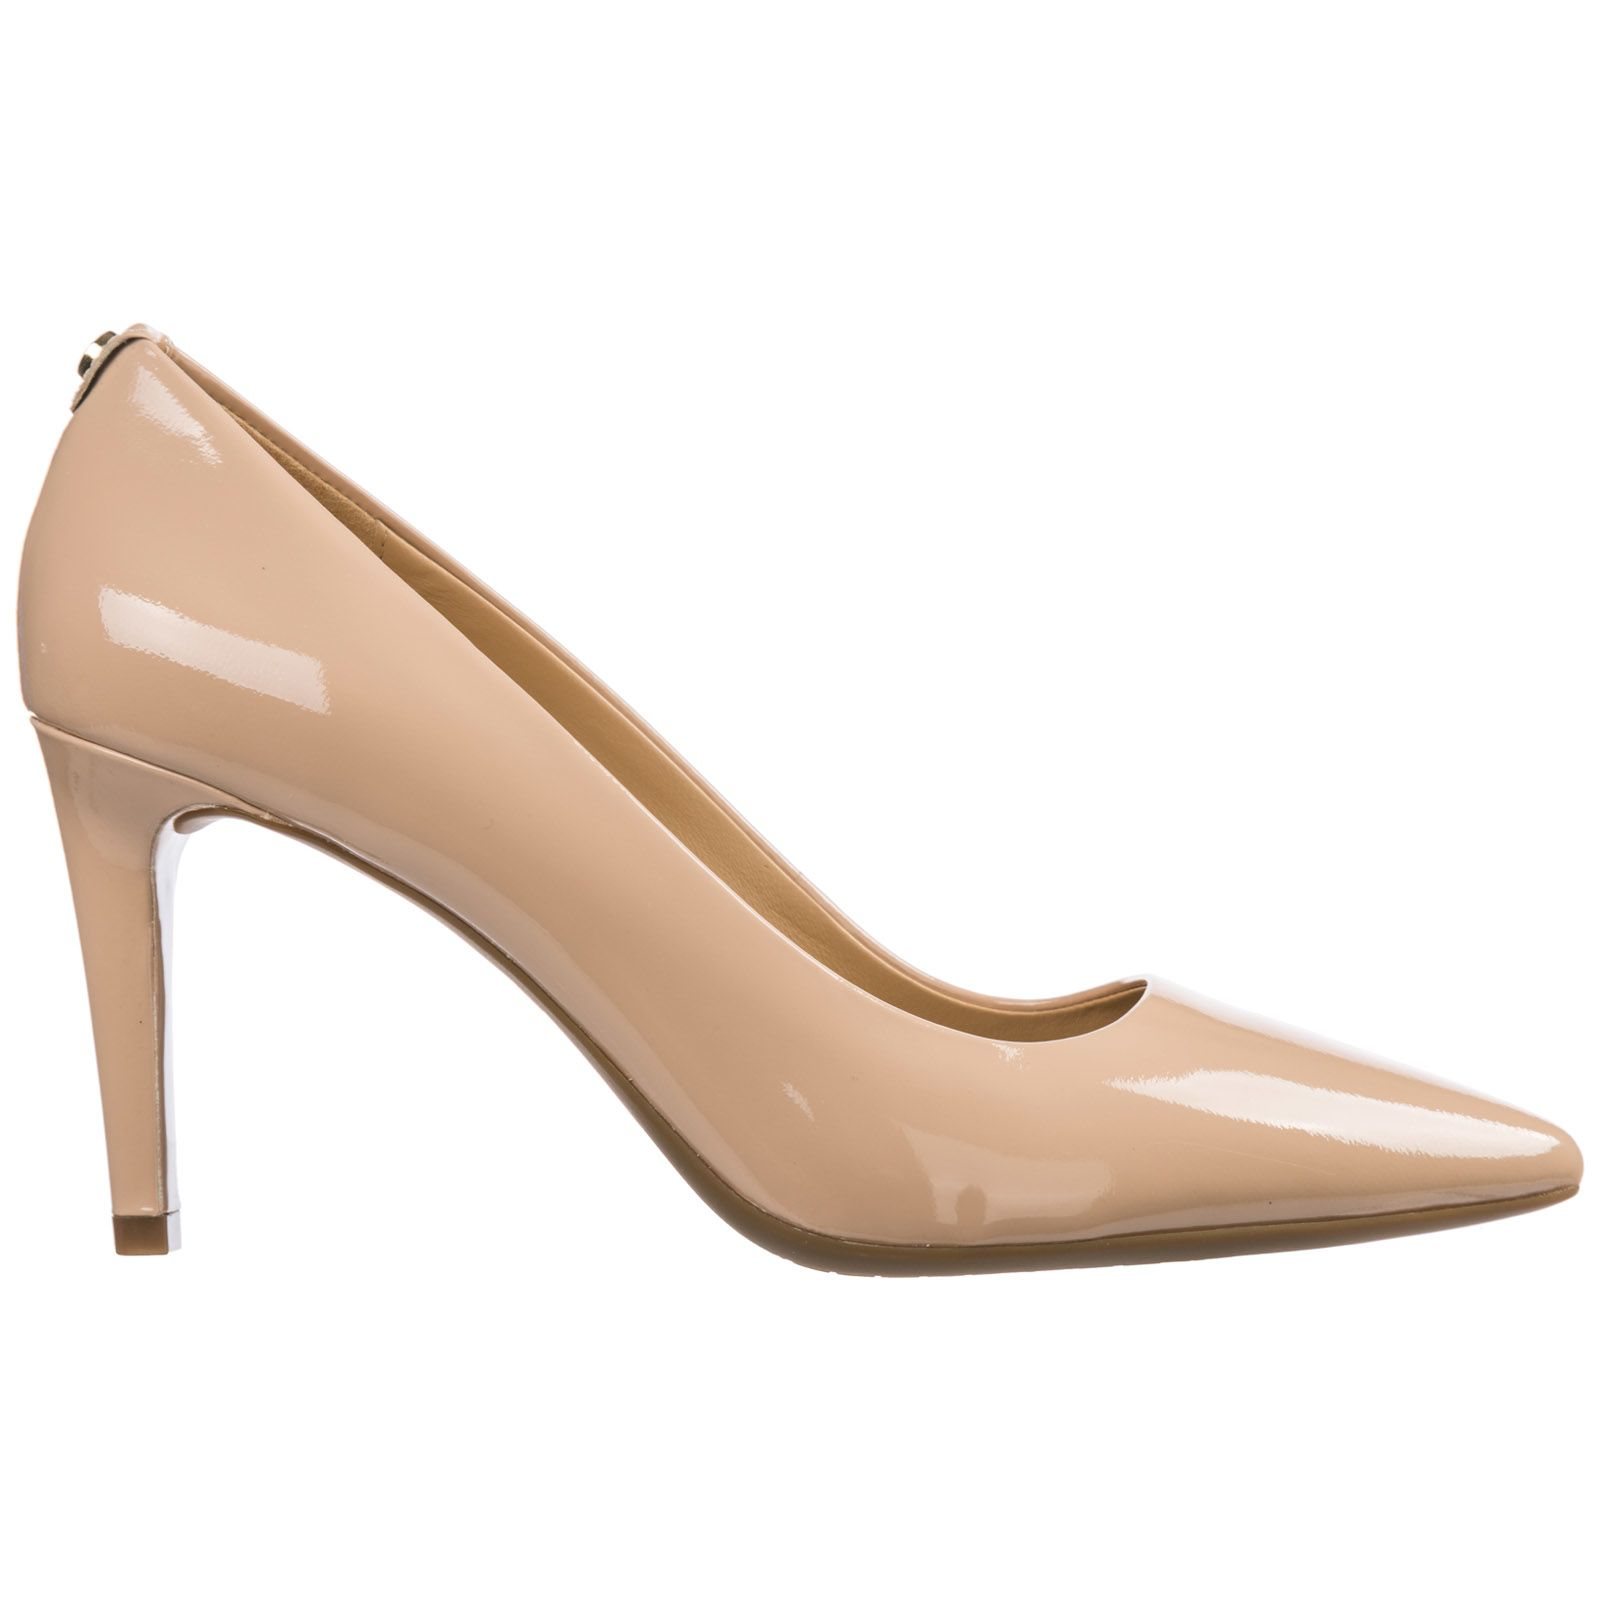 ae5e2b1695d Shop Michael Kors High Heels on sale at the Marie Claire Edit